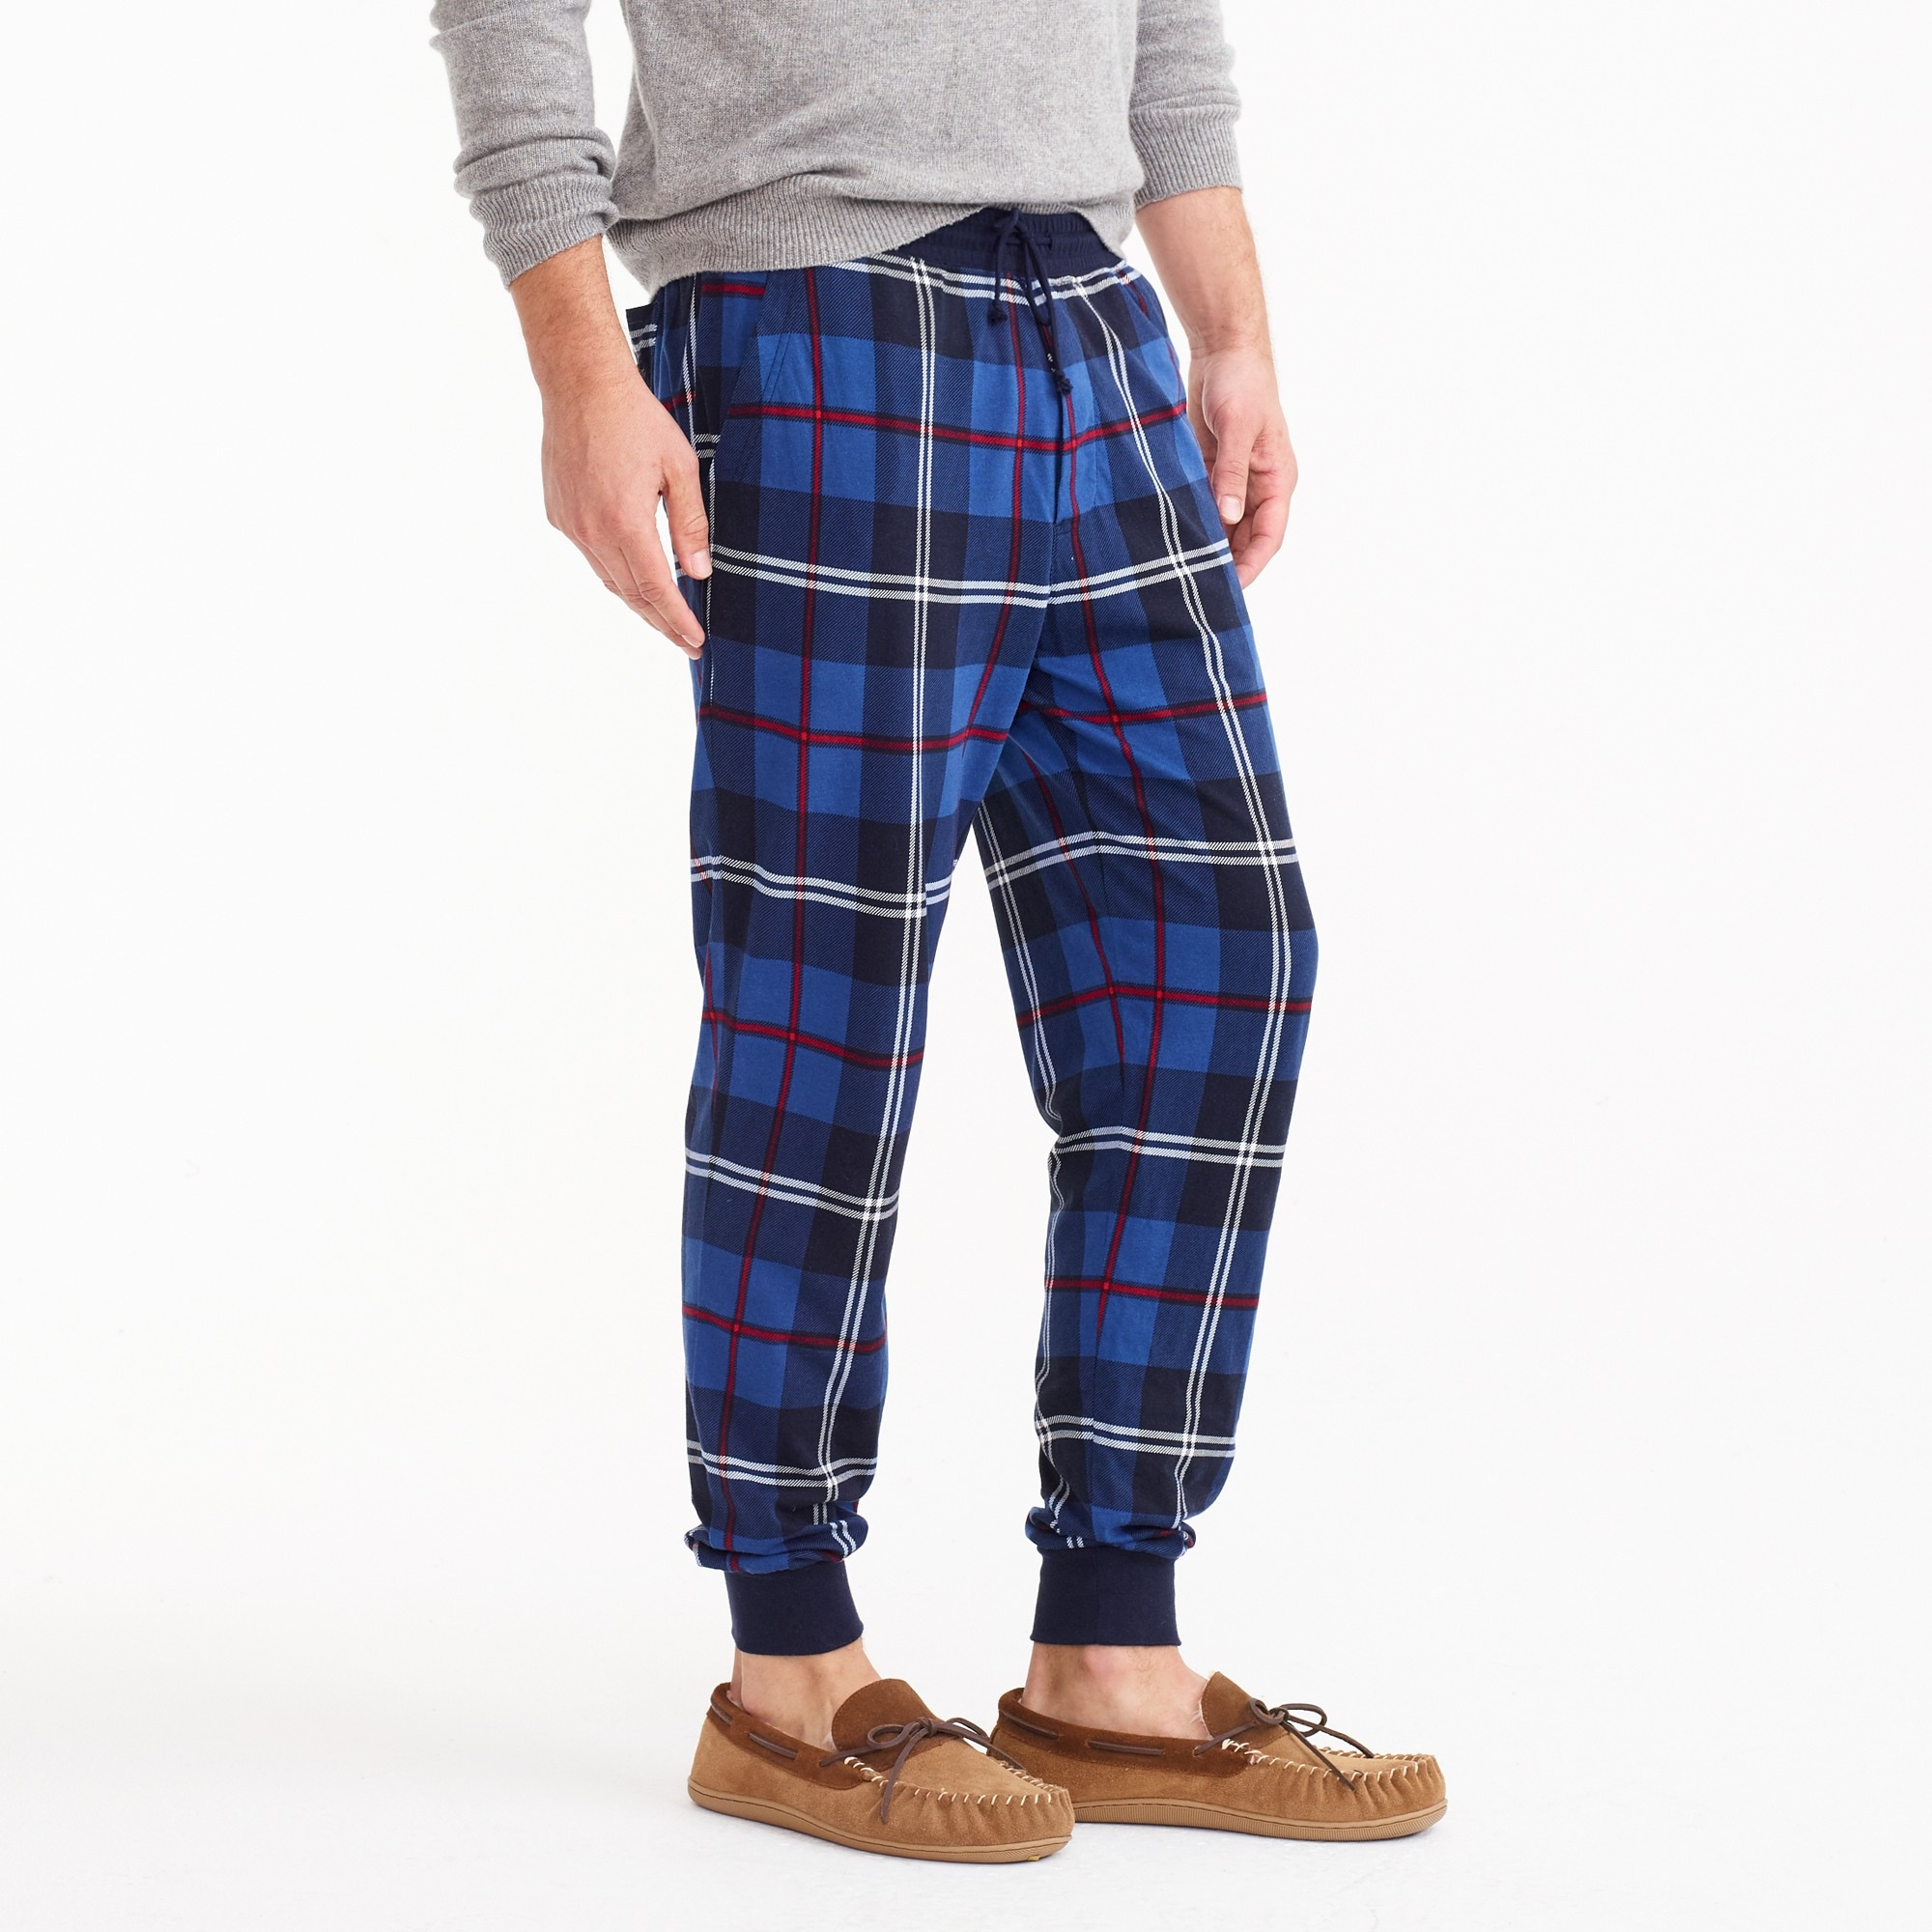 Image 3 for Flannel lounge pant